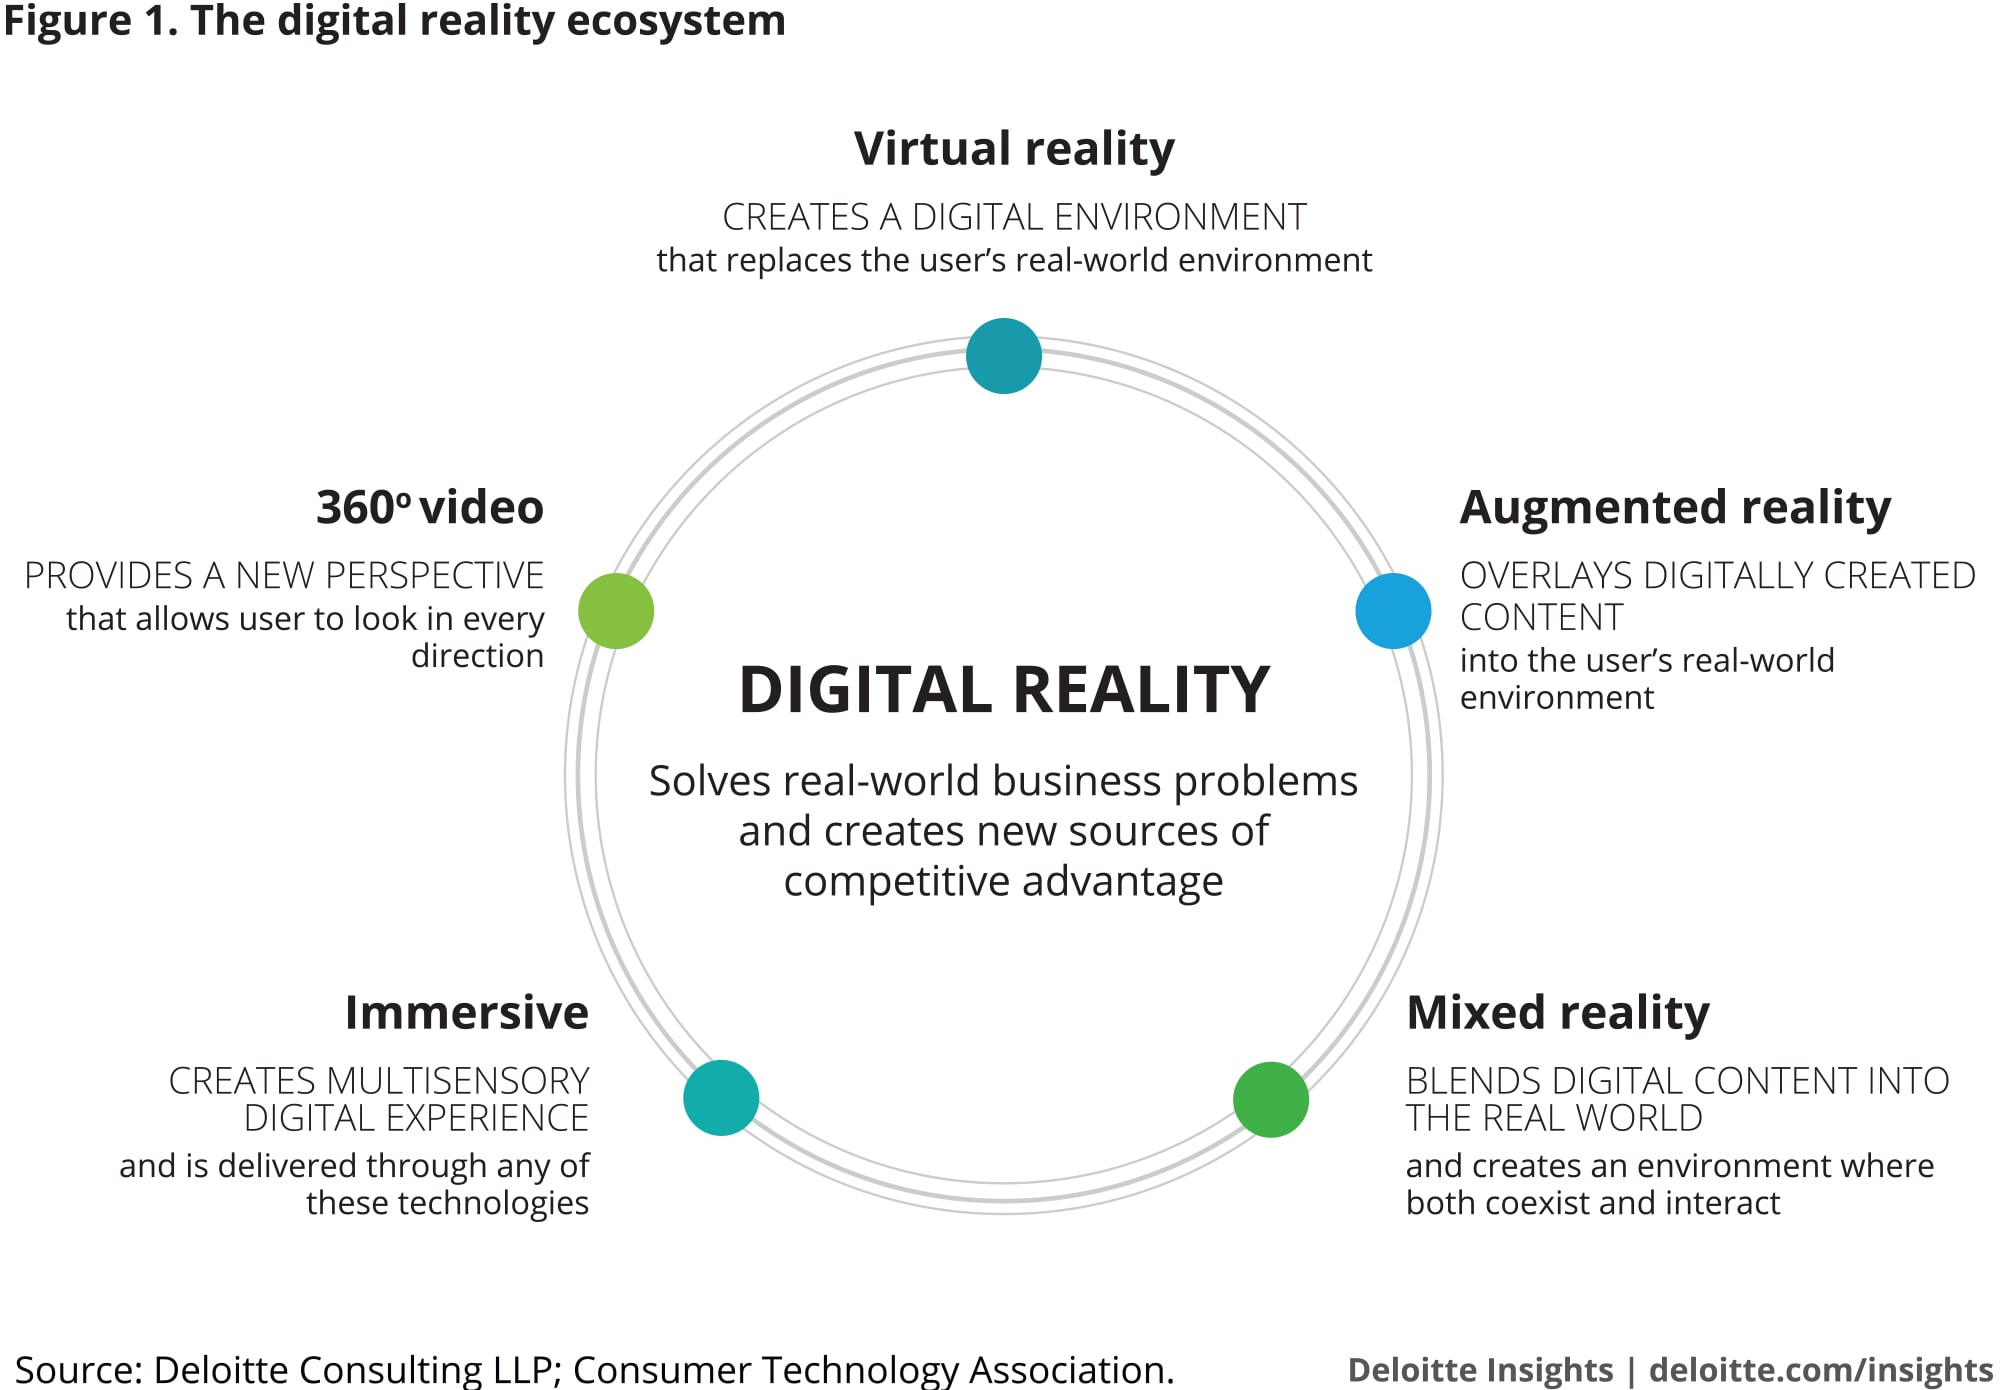 The digital reality ecosystem